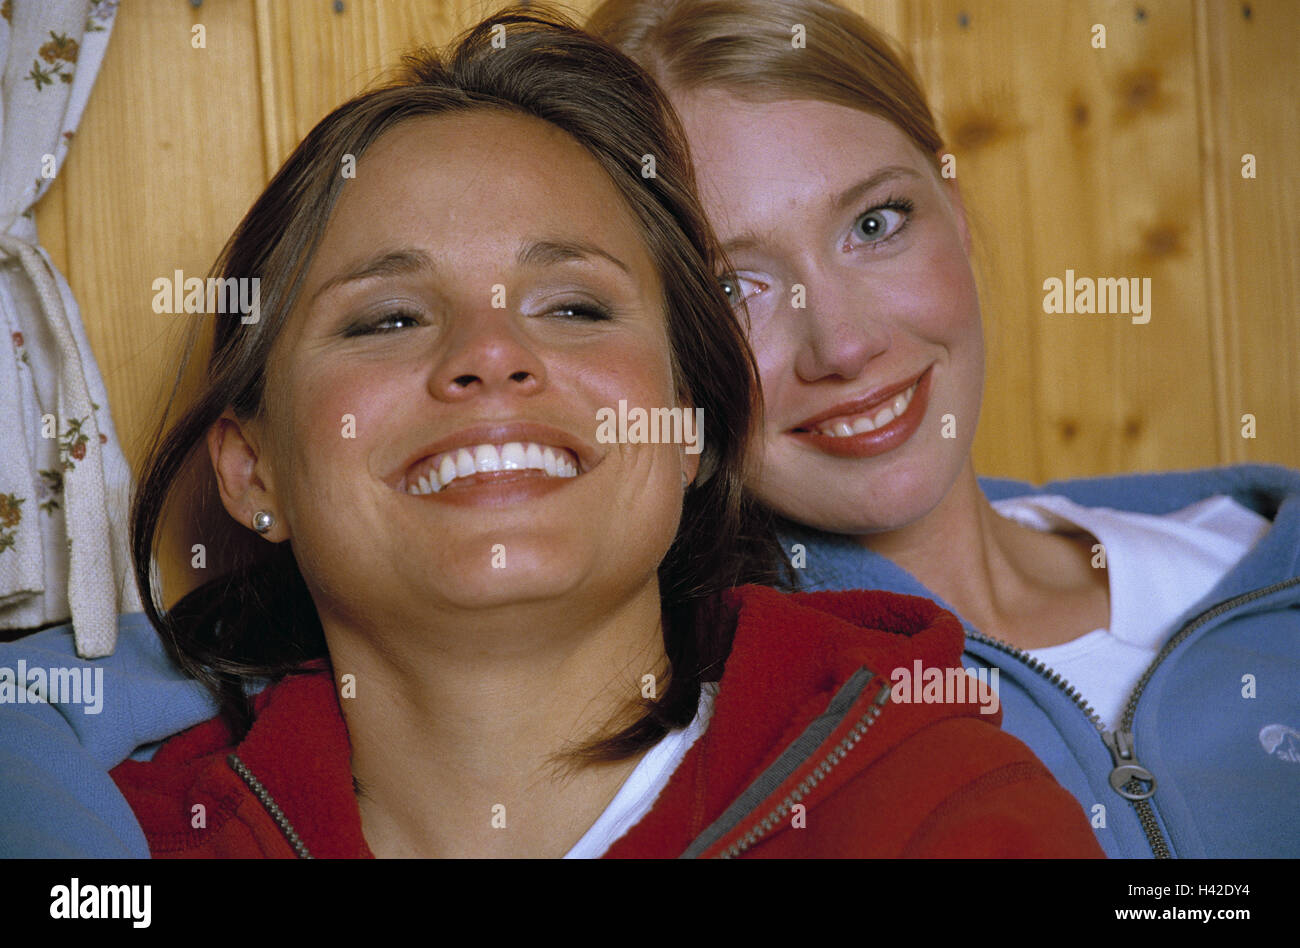 Steelworks evening, women, young, fun, amusement, happy, hut, friends, 20-30 years, friendship, trust, suture, embrace, - Stock Image